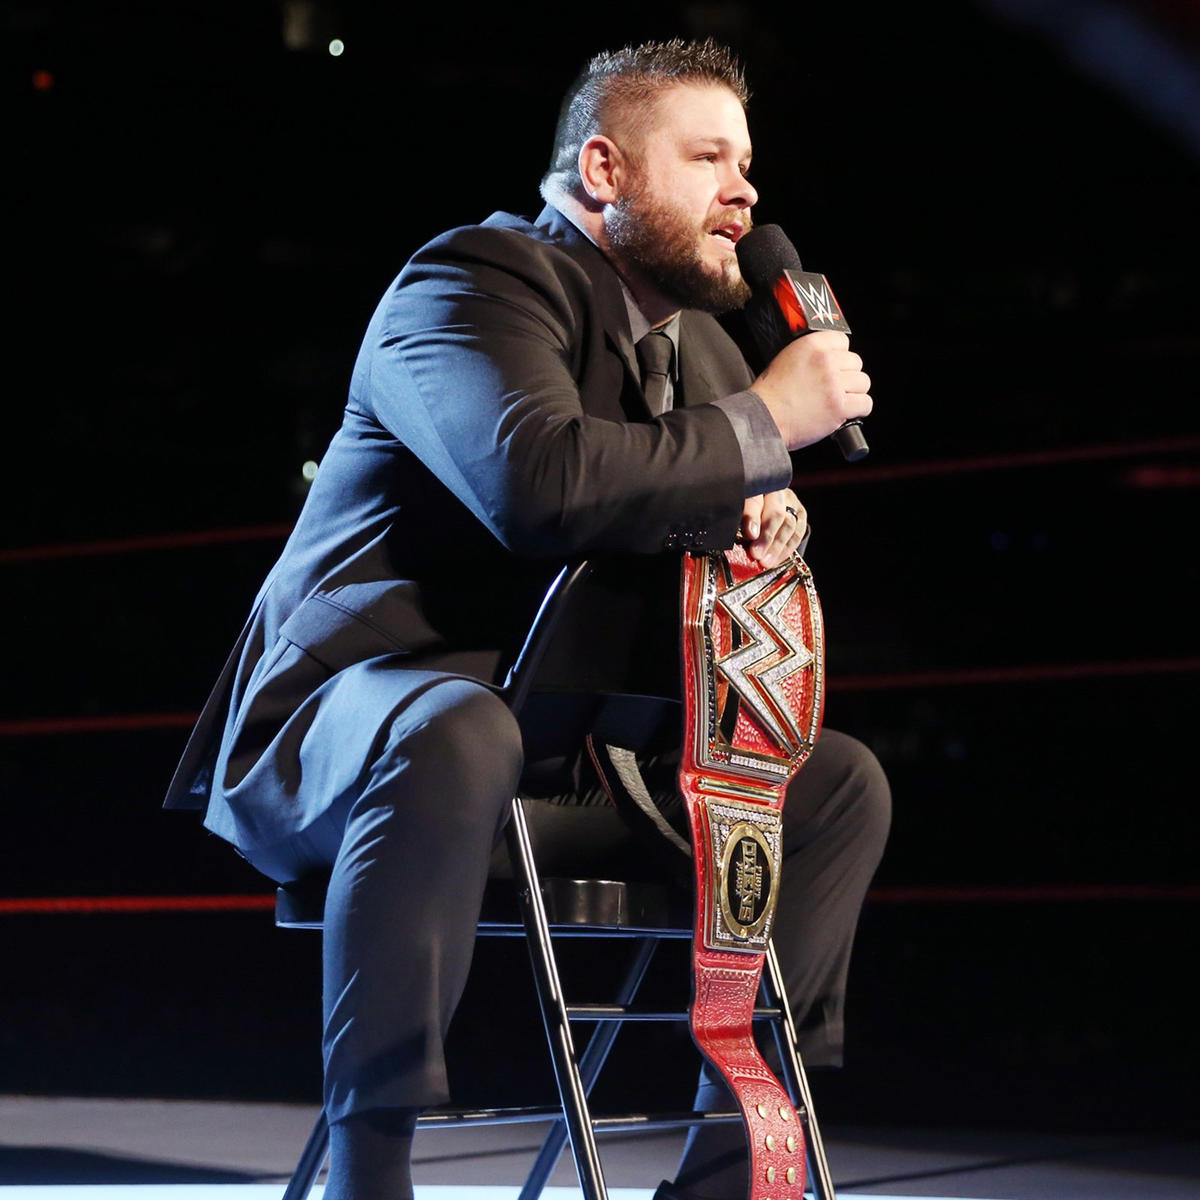 Unlike Brock Lesnar, Owens says he will not take Goldberg lightly, claiming he knows what to expect and what to do.